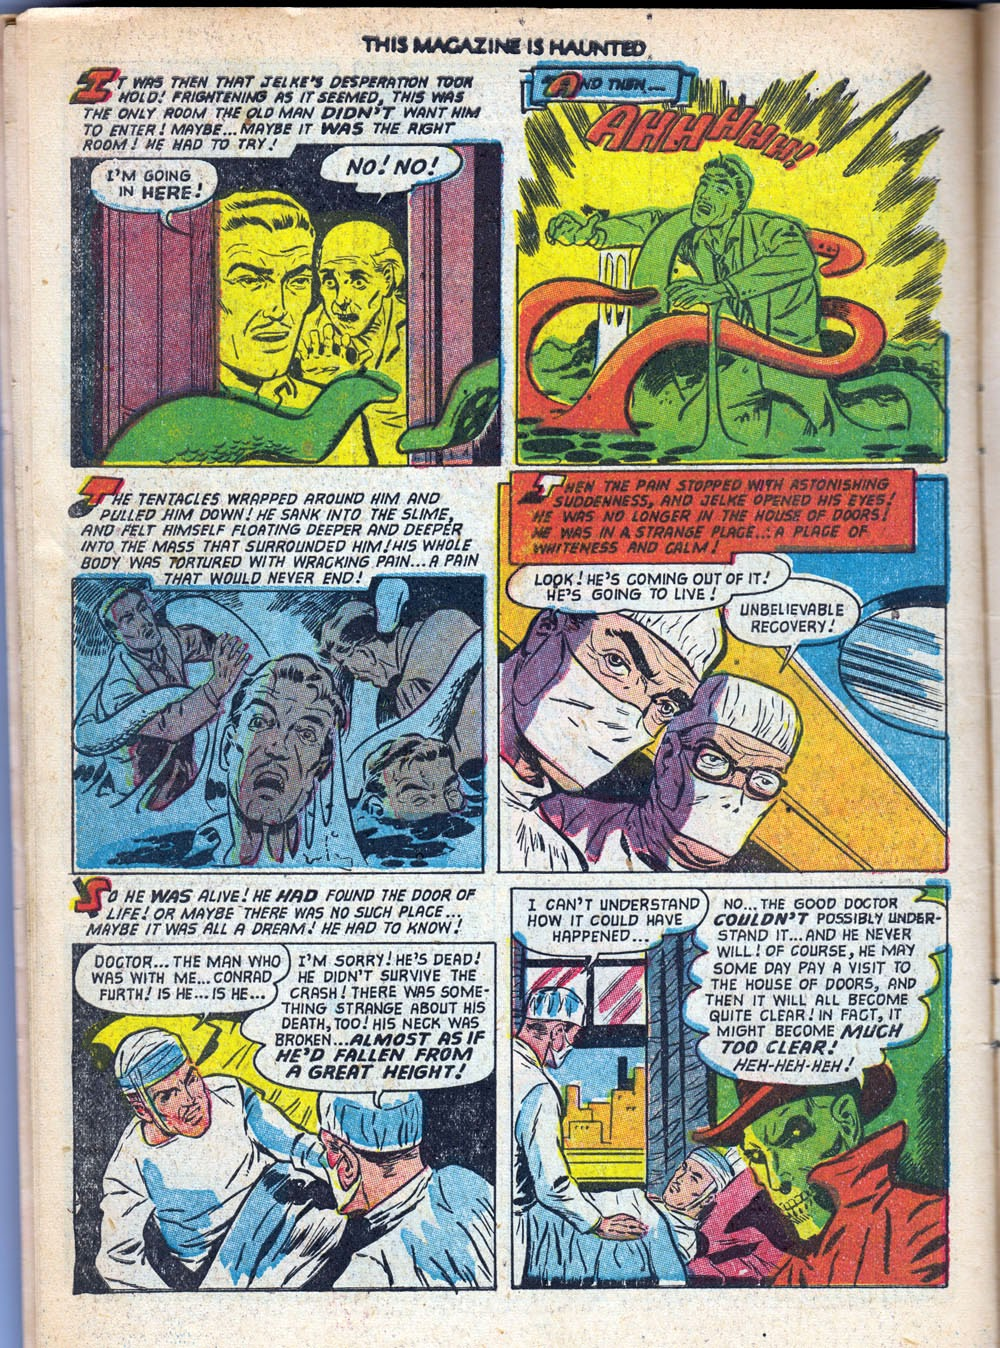 Read online This Magazine Is Haunted comic -  Issue #9 - 34